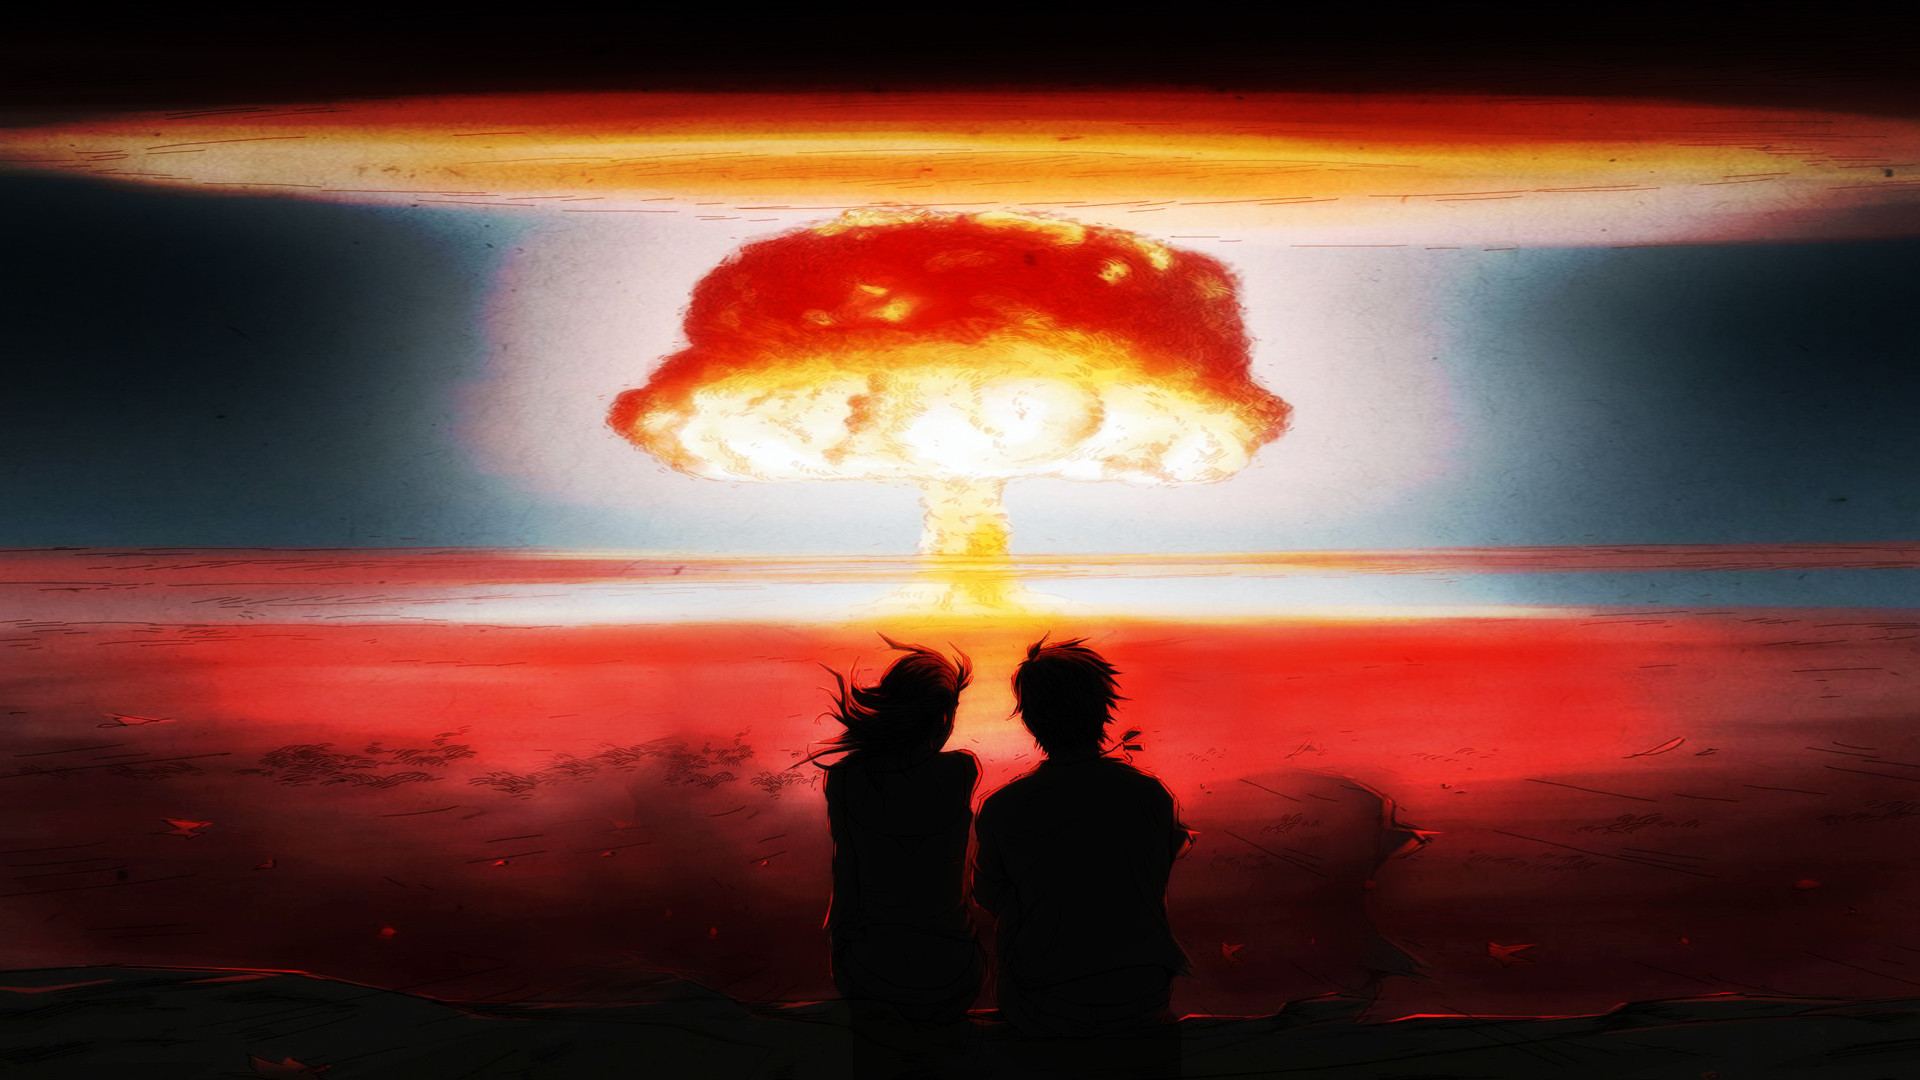 1920x1080 Nuclear-Blast Bomb Explosion Anime Drawing Mushroom Cloud Nuclear wallpaper  |  | 23570 | WallpaperUP